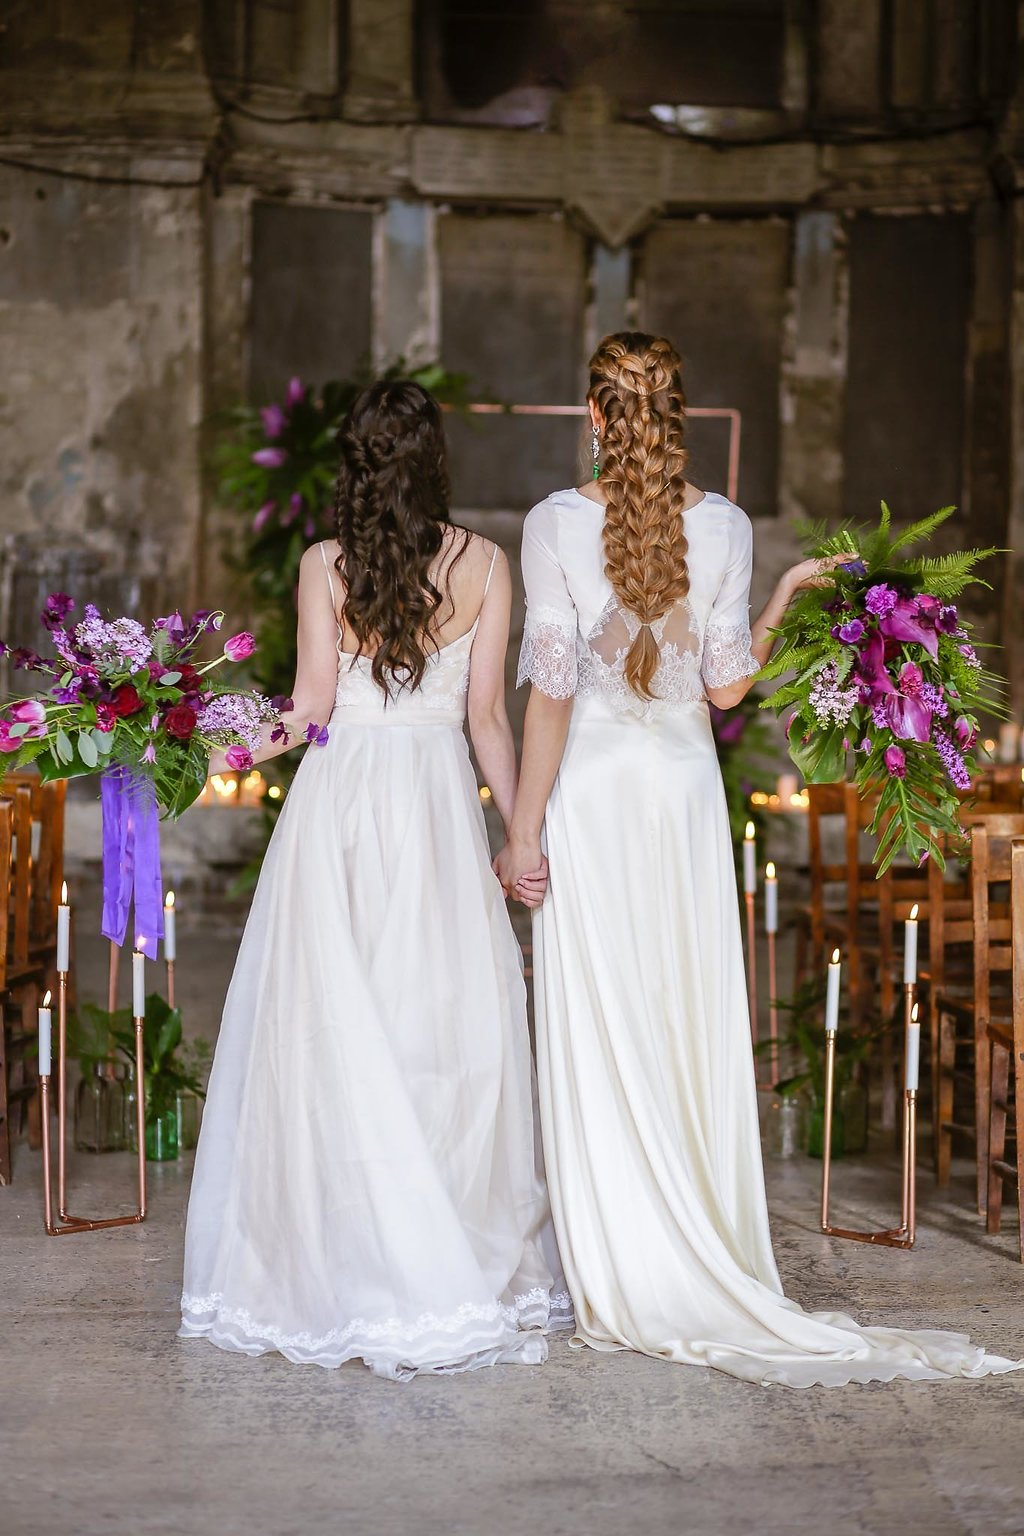 Rock the Purple Love - Gido Weddings - The Asylum Chapel - alternative wedding inspiration 116 - Rock the Purple Love - Gido Weddings - The Asylum Chapel - alternative wedding inspiration 117 - Urban, modern wedding